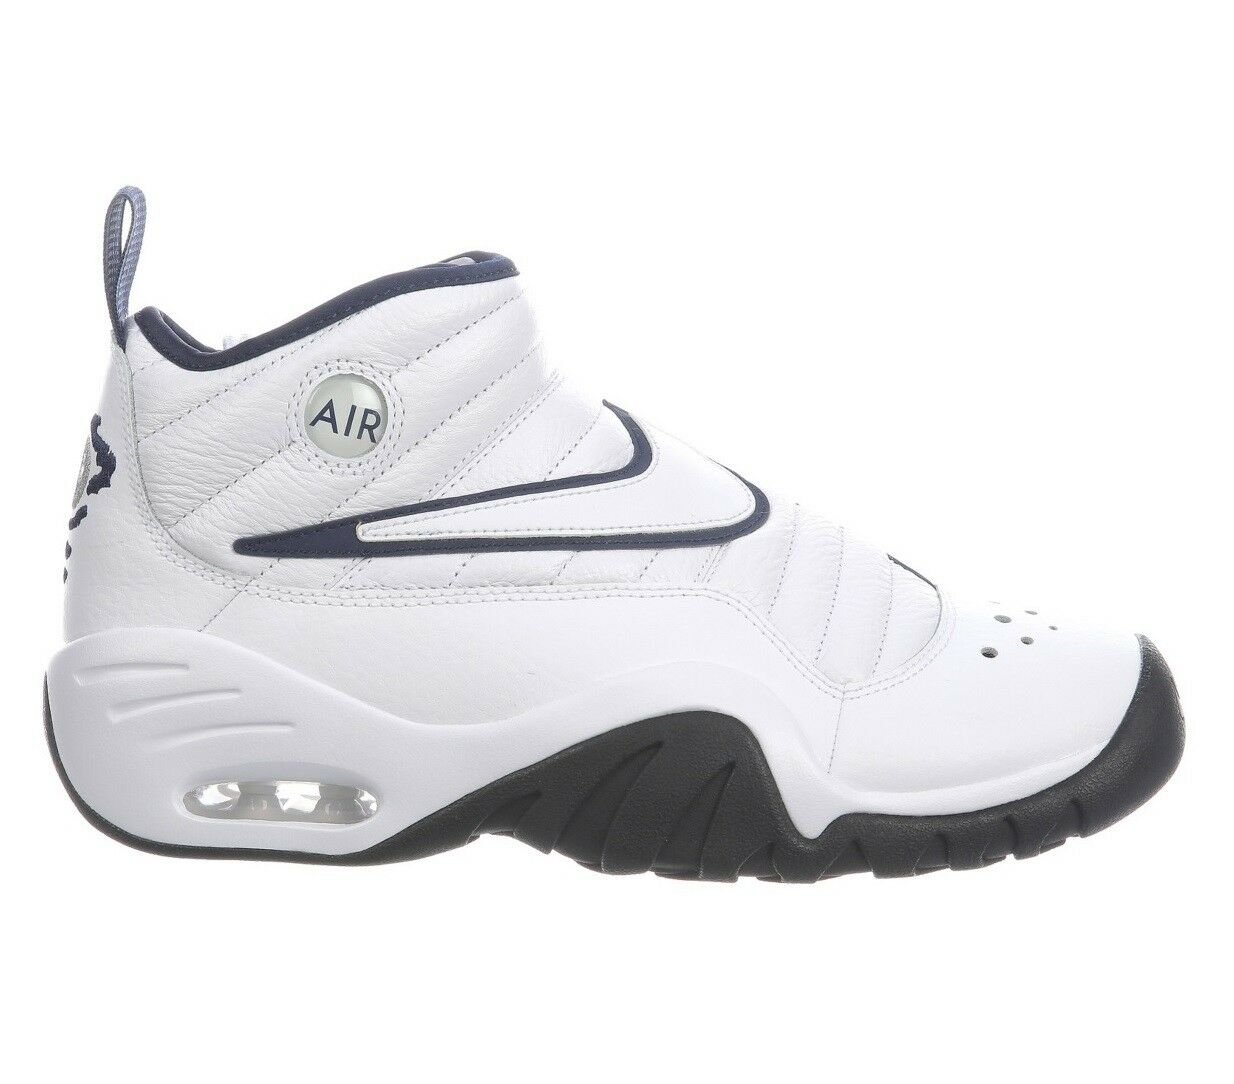 Nike Air Shake Ndestrukt Mens 880869-102 White Navy Basketball Shoes Size 7.5